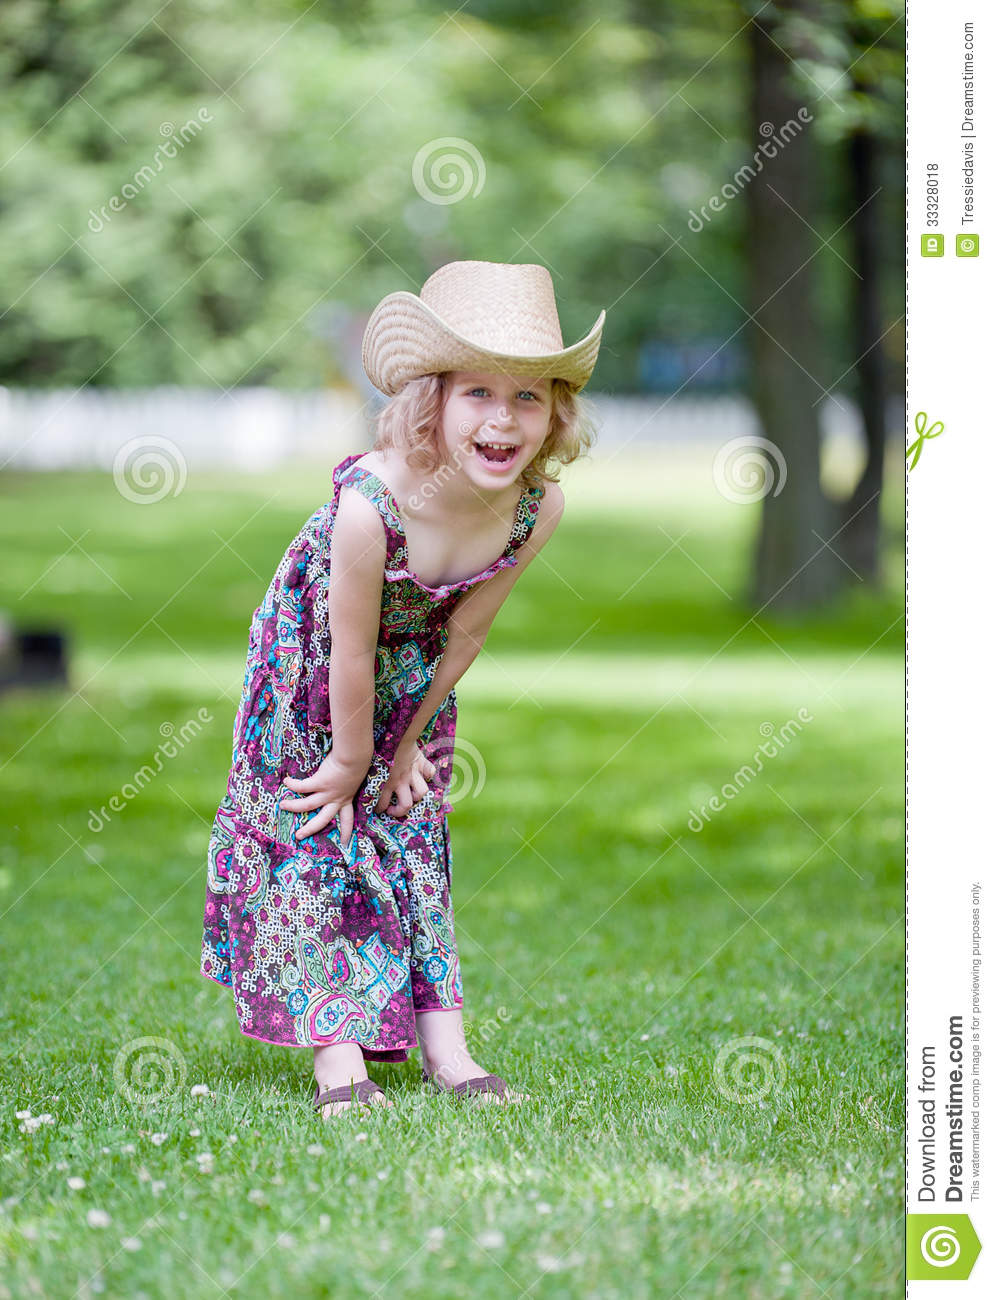 873875f57a219 Happy Little Girl In Cowboy Hat Stock Photo - Image of dress